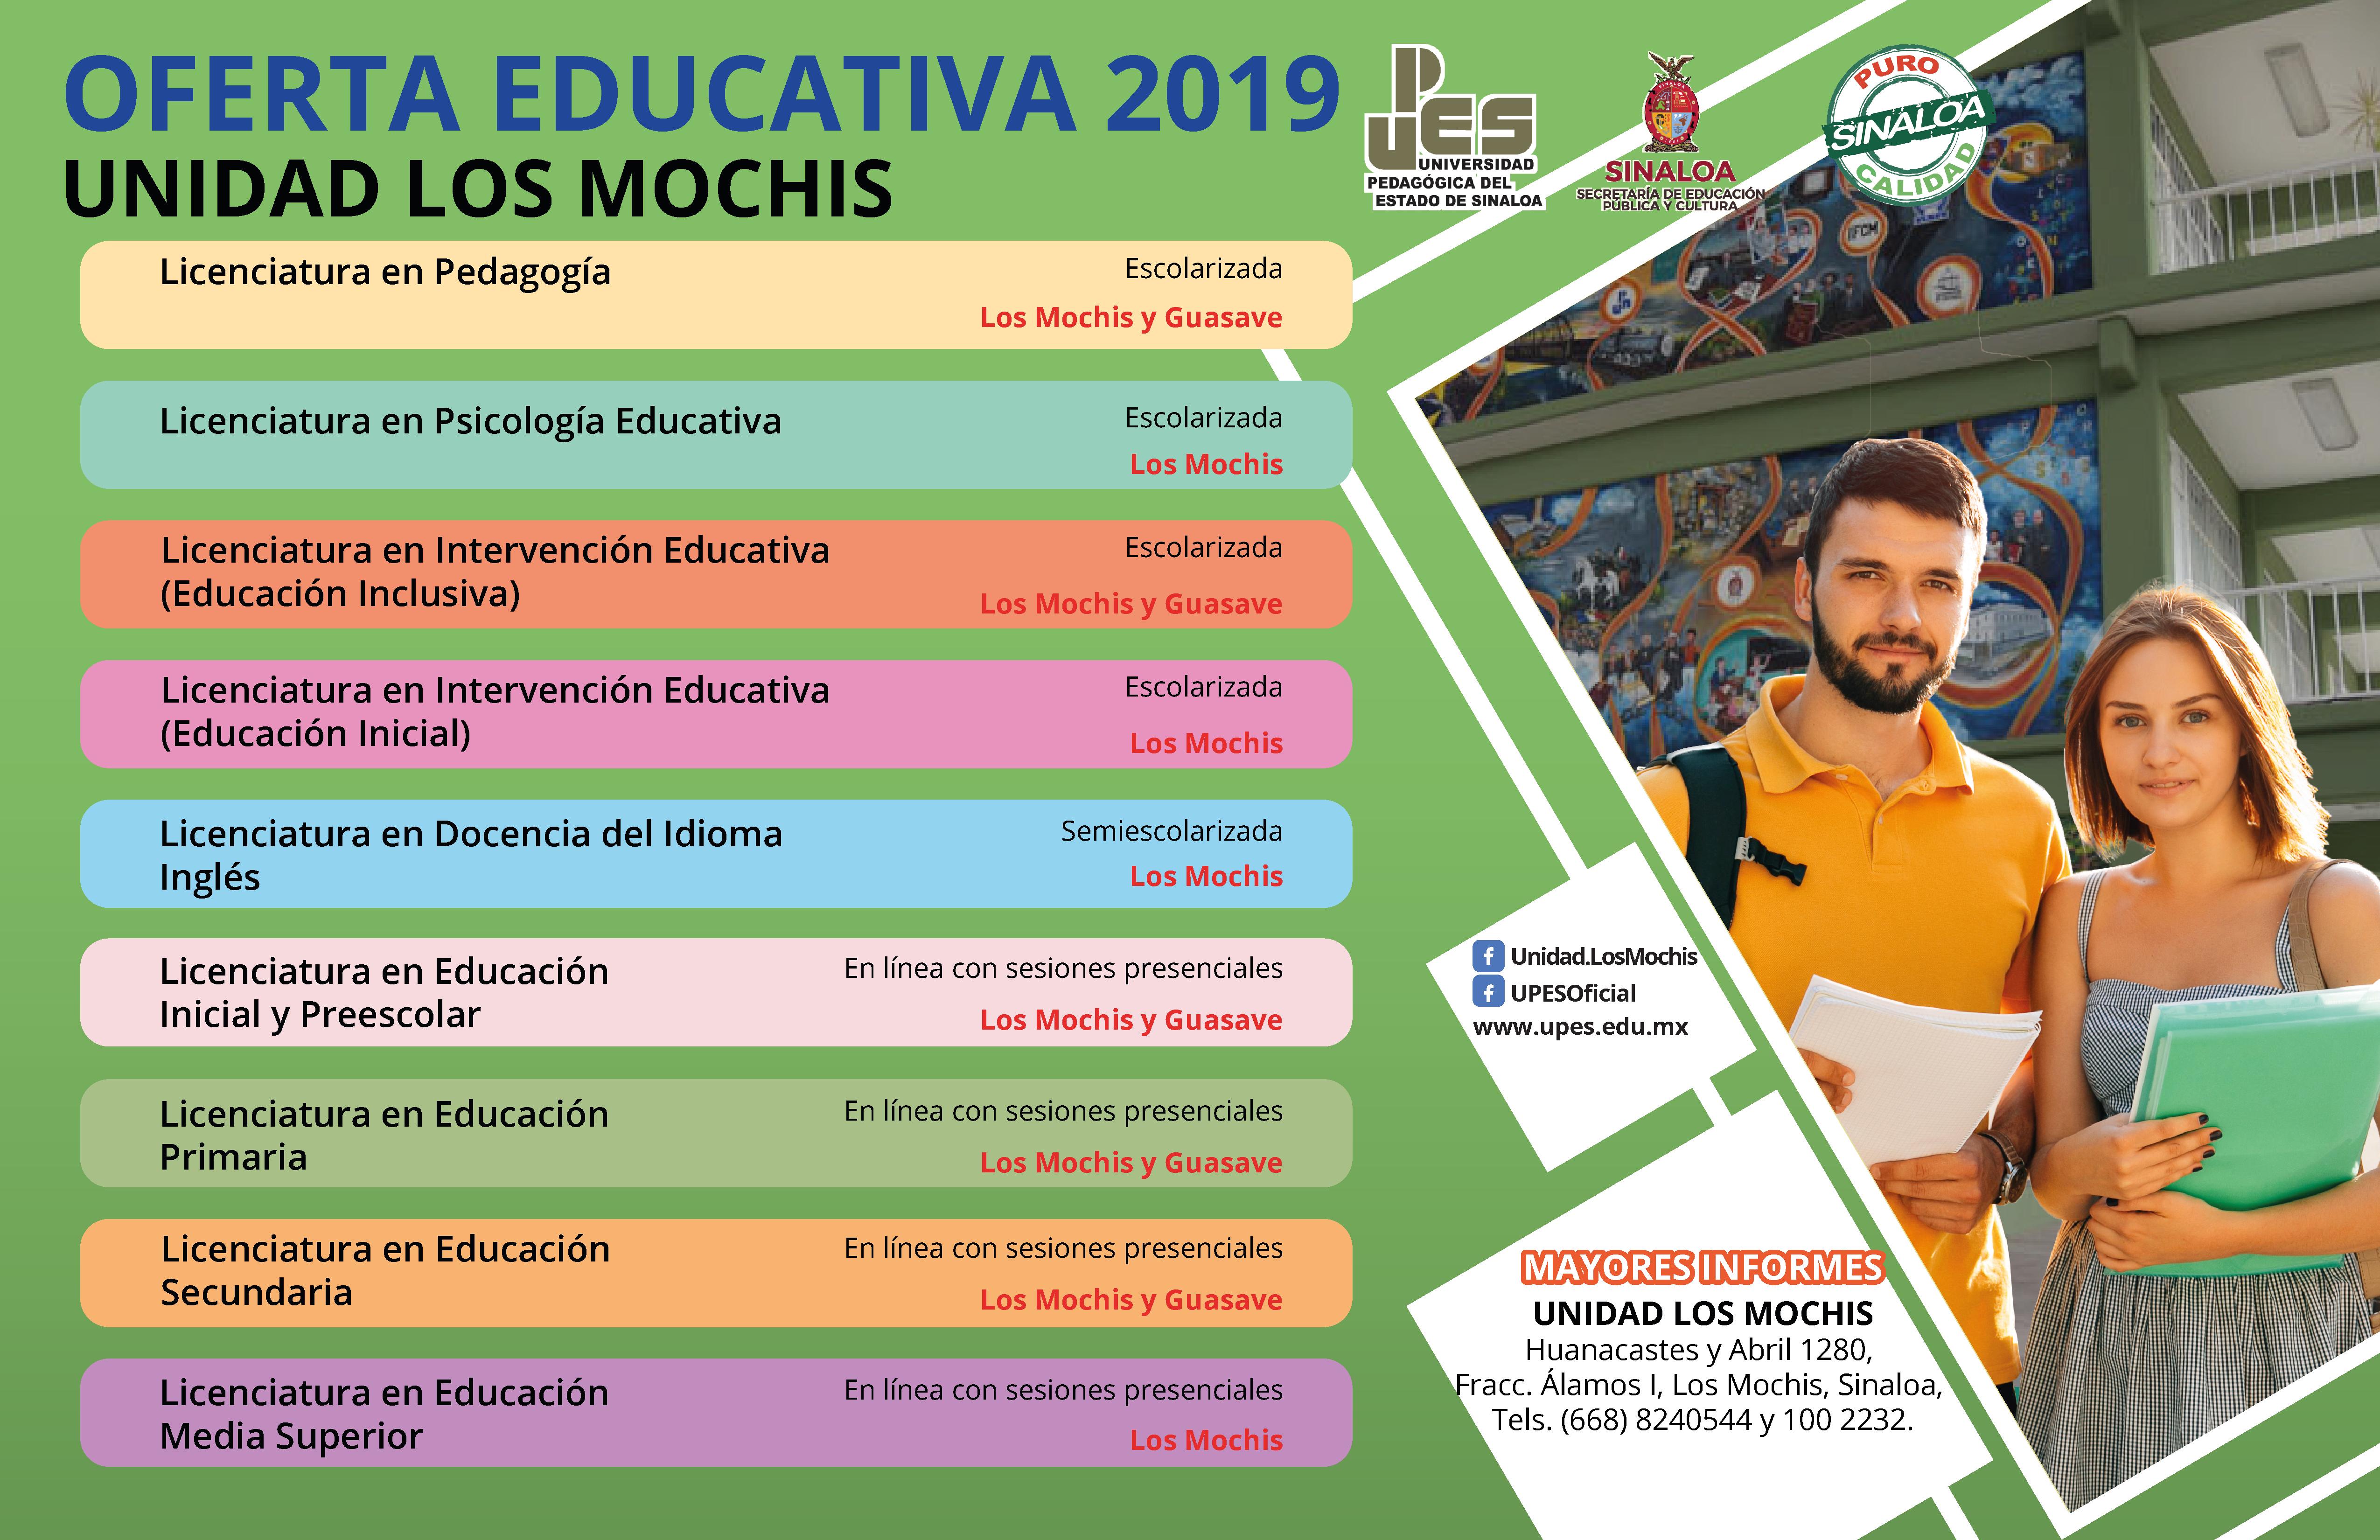 Oferta-Educativa-2019-Los-Mochis-copia300x